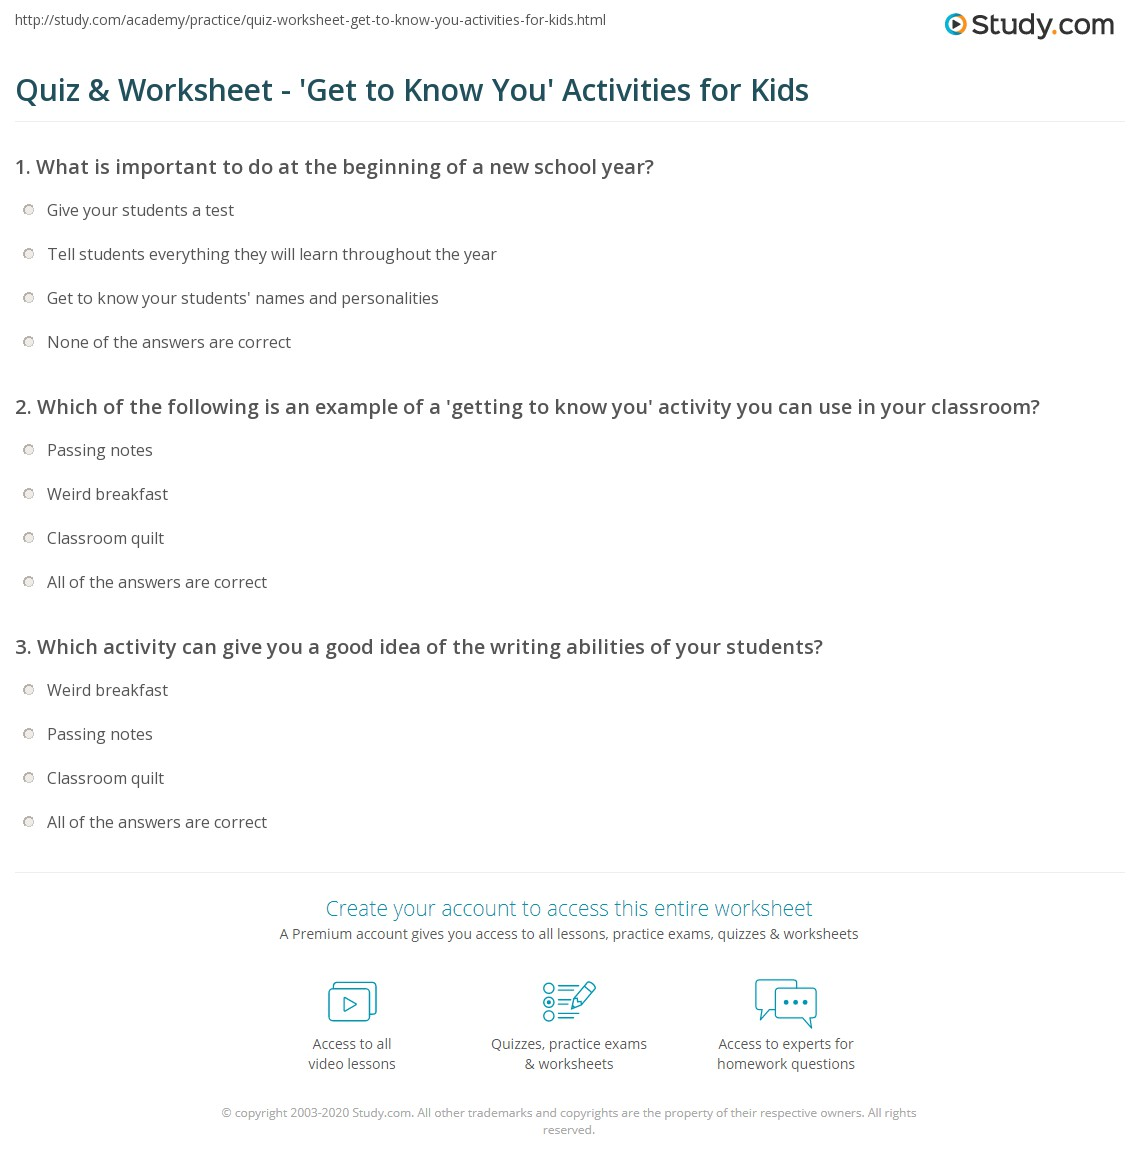 Worksheets Getting To Know You Worksheets For Kids quiz worksheet get to know you activities for kids study com print worksheet